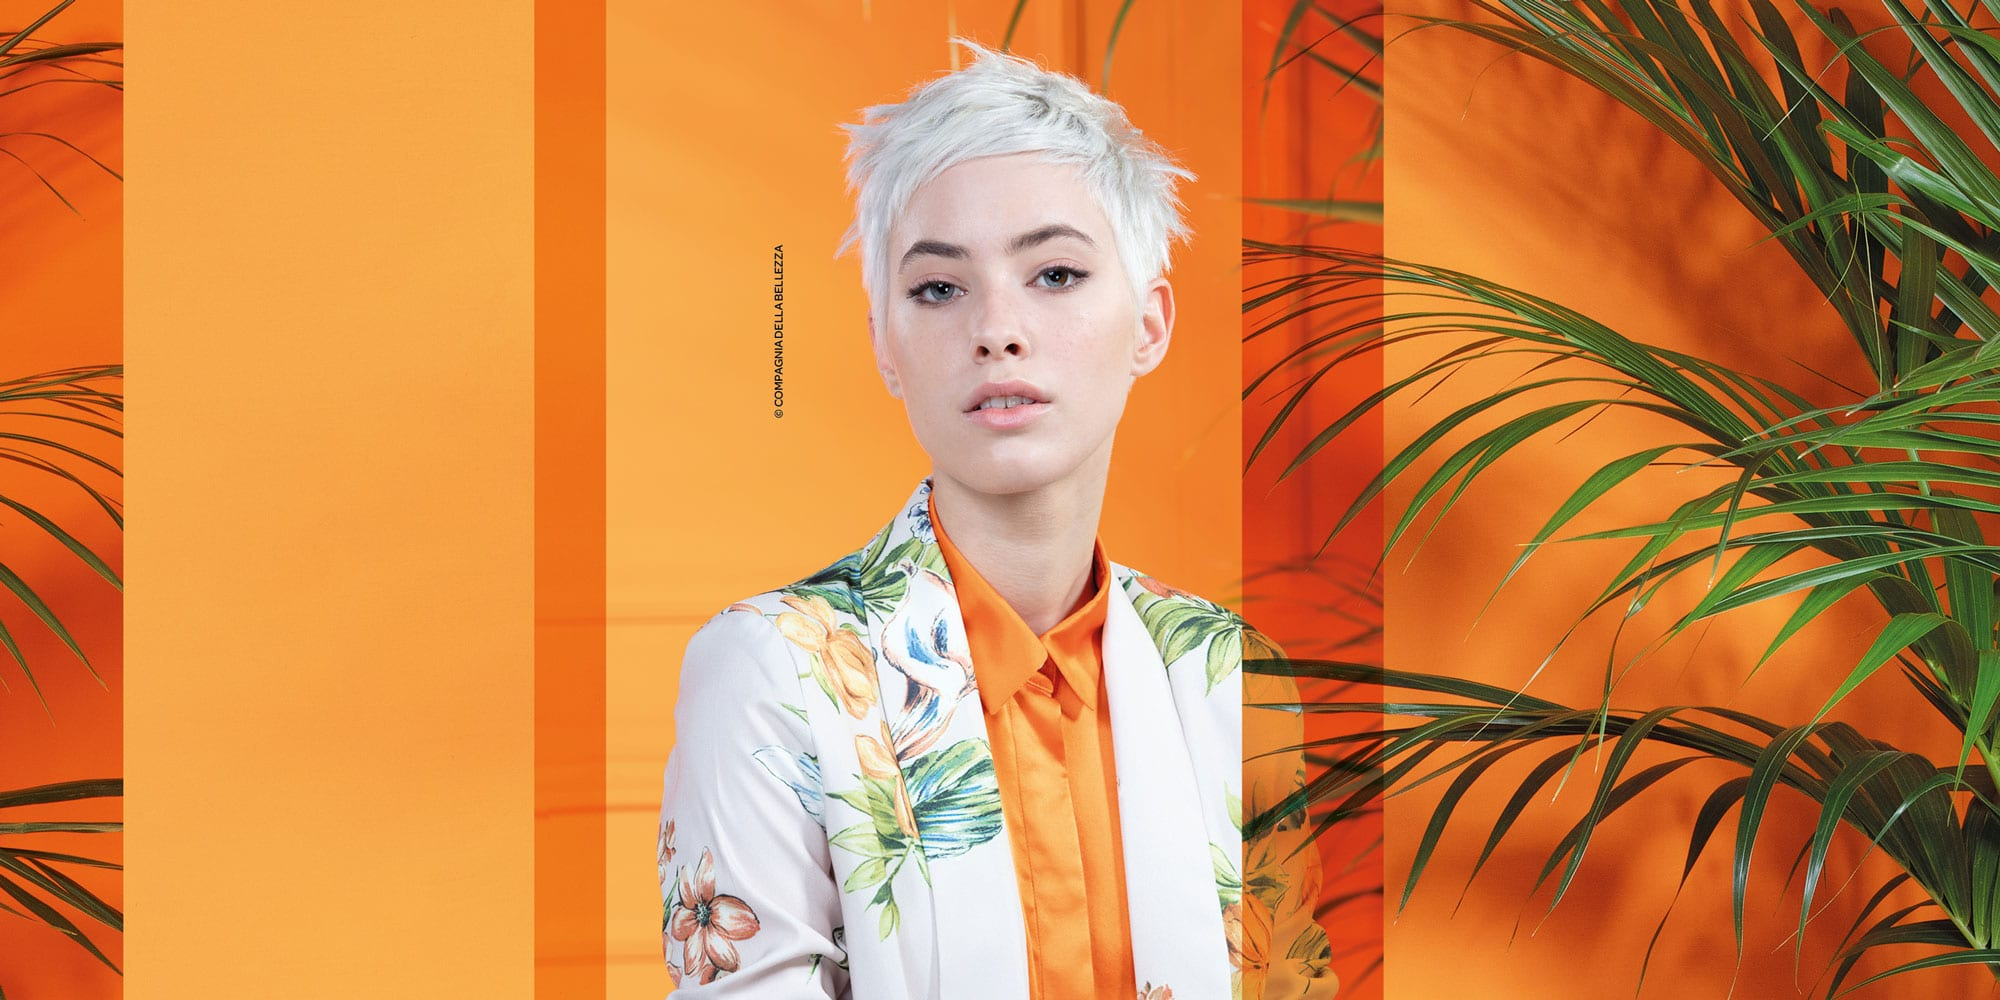 Personality Pixie Cut - Face Code - Hairstyle Collection S/S 2016 - Naville - © Compagnia Della Bellezza